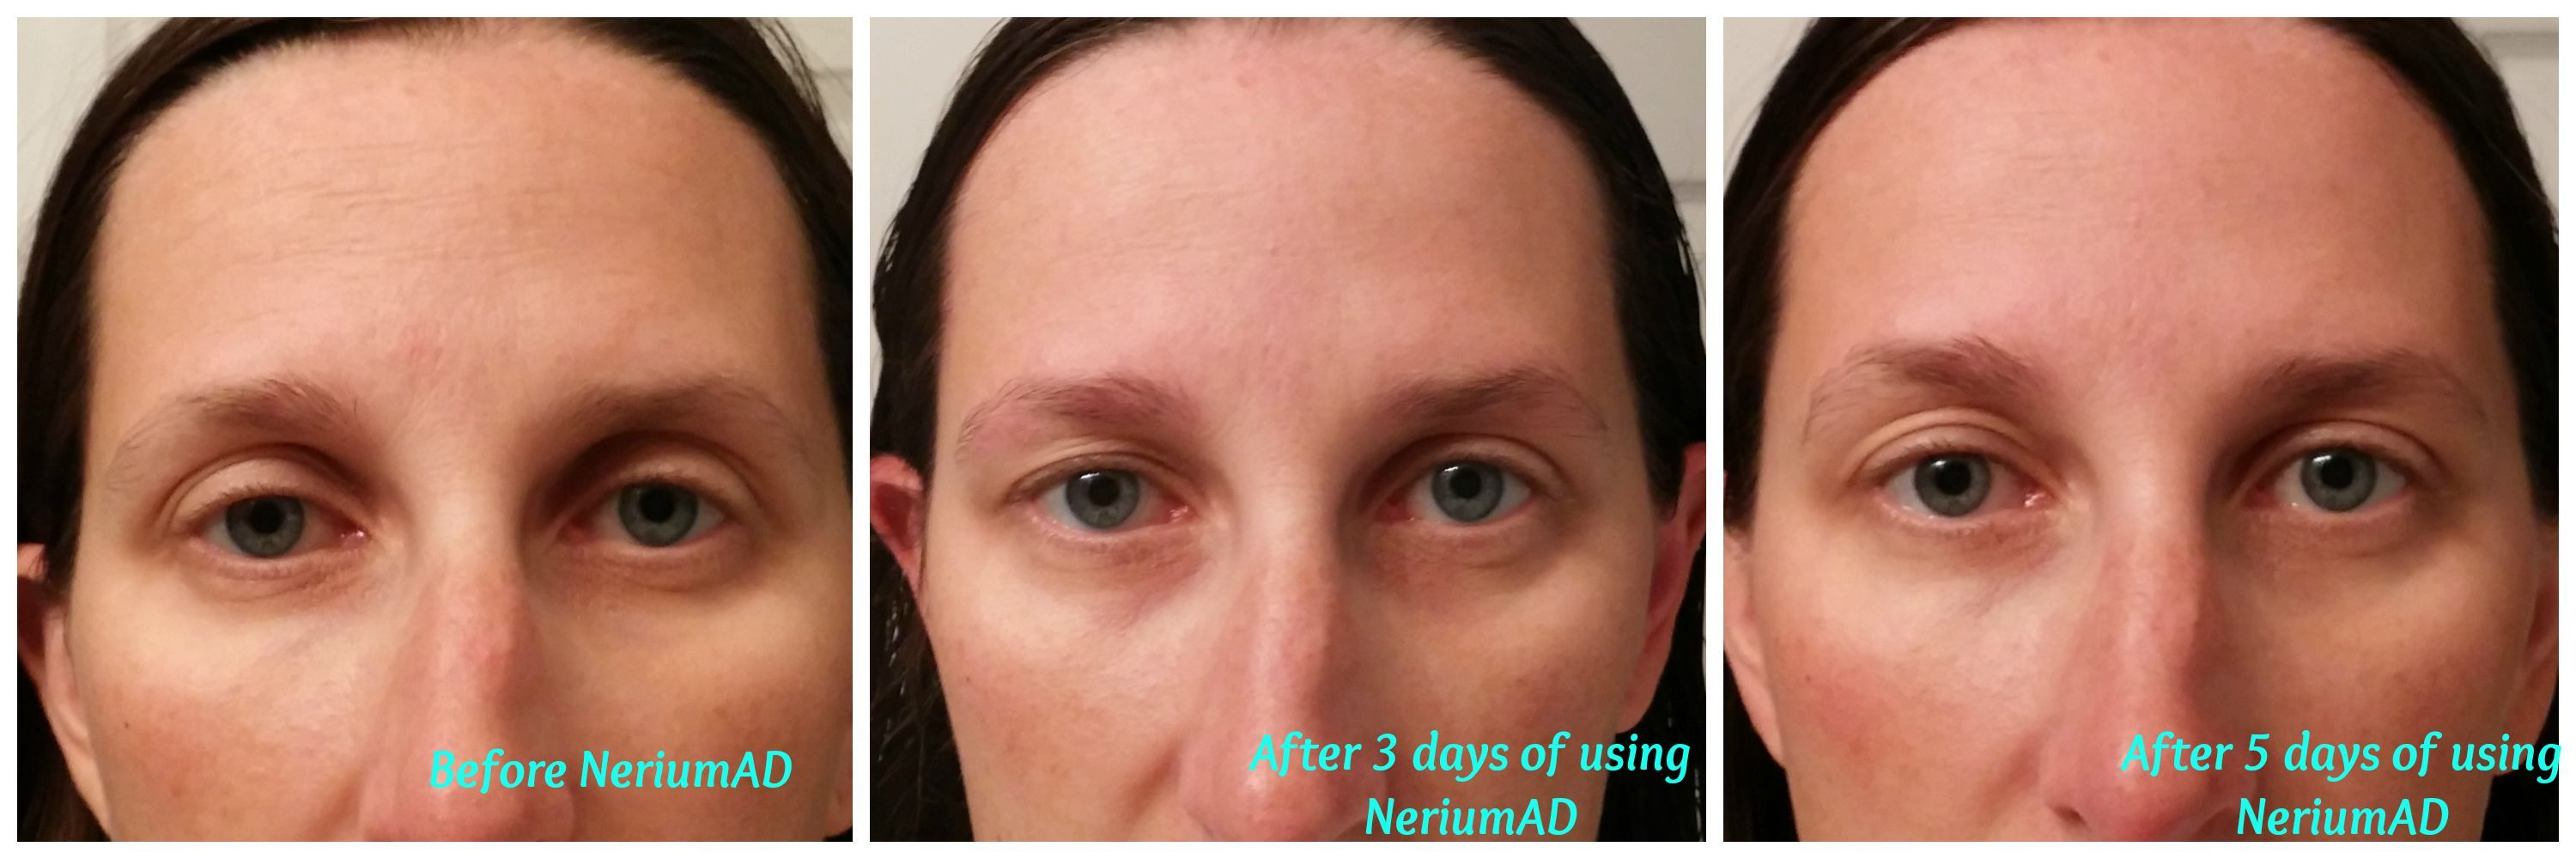 These are my results after 5 days of using NeriumAD.  Join my Facebook group at https://www.facebook.com/groups/NeriumbyAmber/ or my Nerium site http://www.amberkatrena.nerium.com